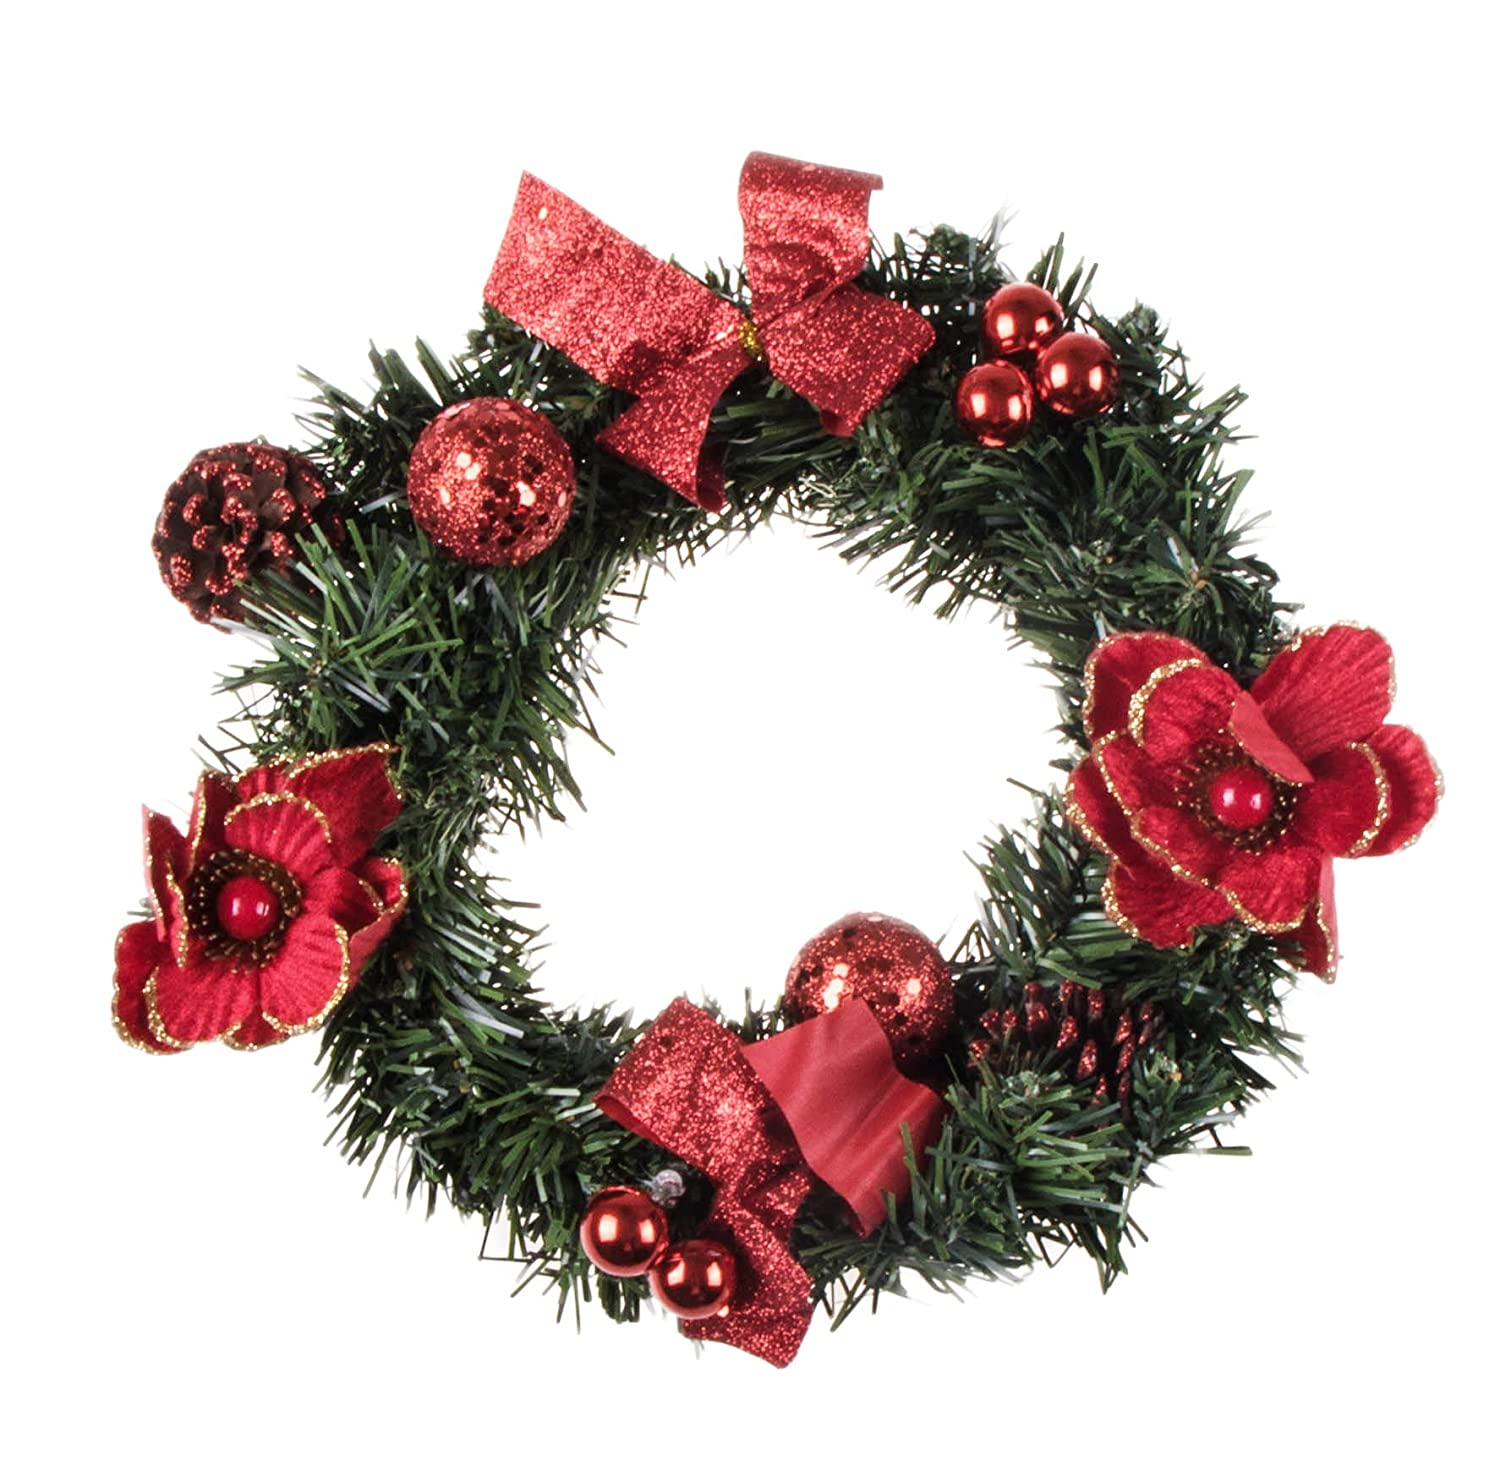 "Christmas Wreath with White Poinsettia, Snow Covered Pine Cones, Gold Bows and Ornaments | Perfect for Interior or Exterior Christmas Decor | Hang on Doors, Walls, Stairs and More! | 10""x10""x3"" Clever Creations No Model"